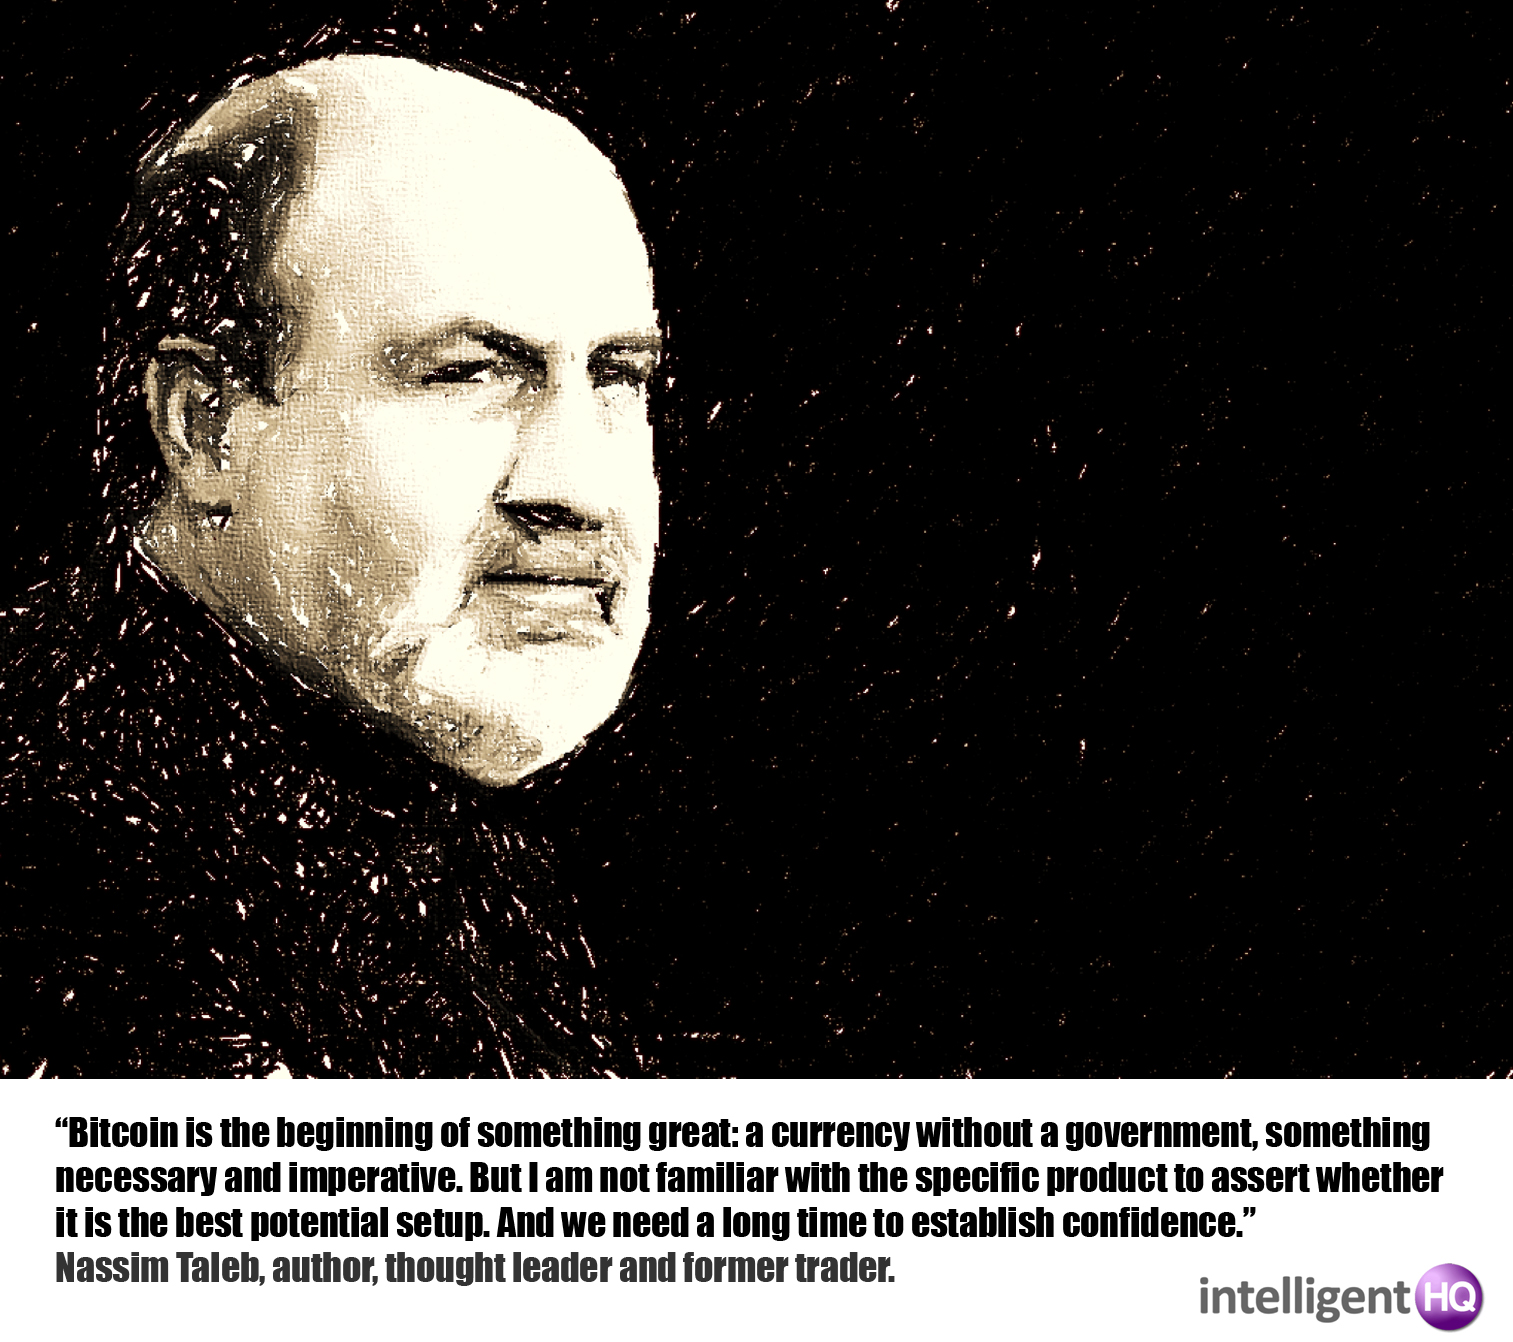 Nassim Taleb, author, thought leader and former trader.